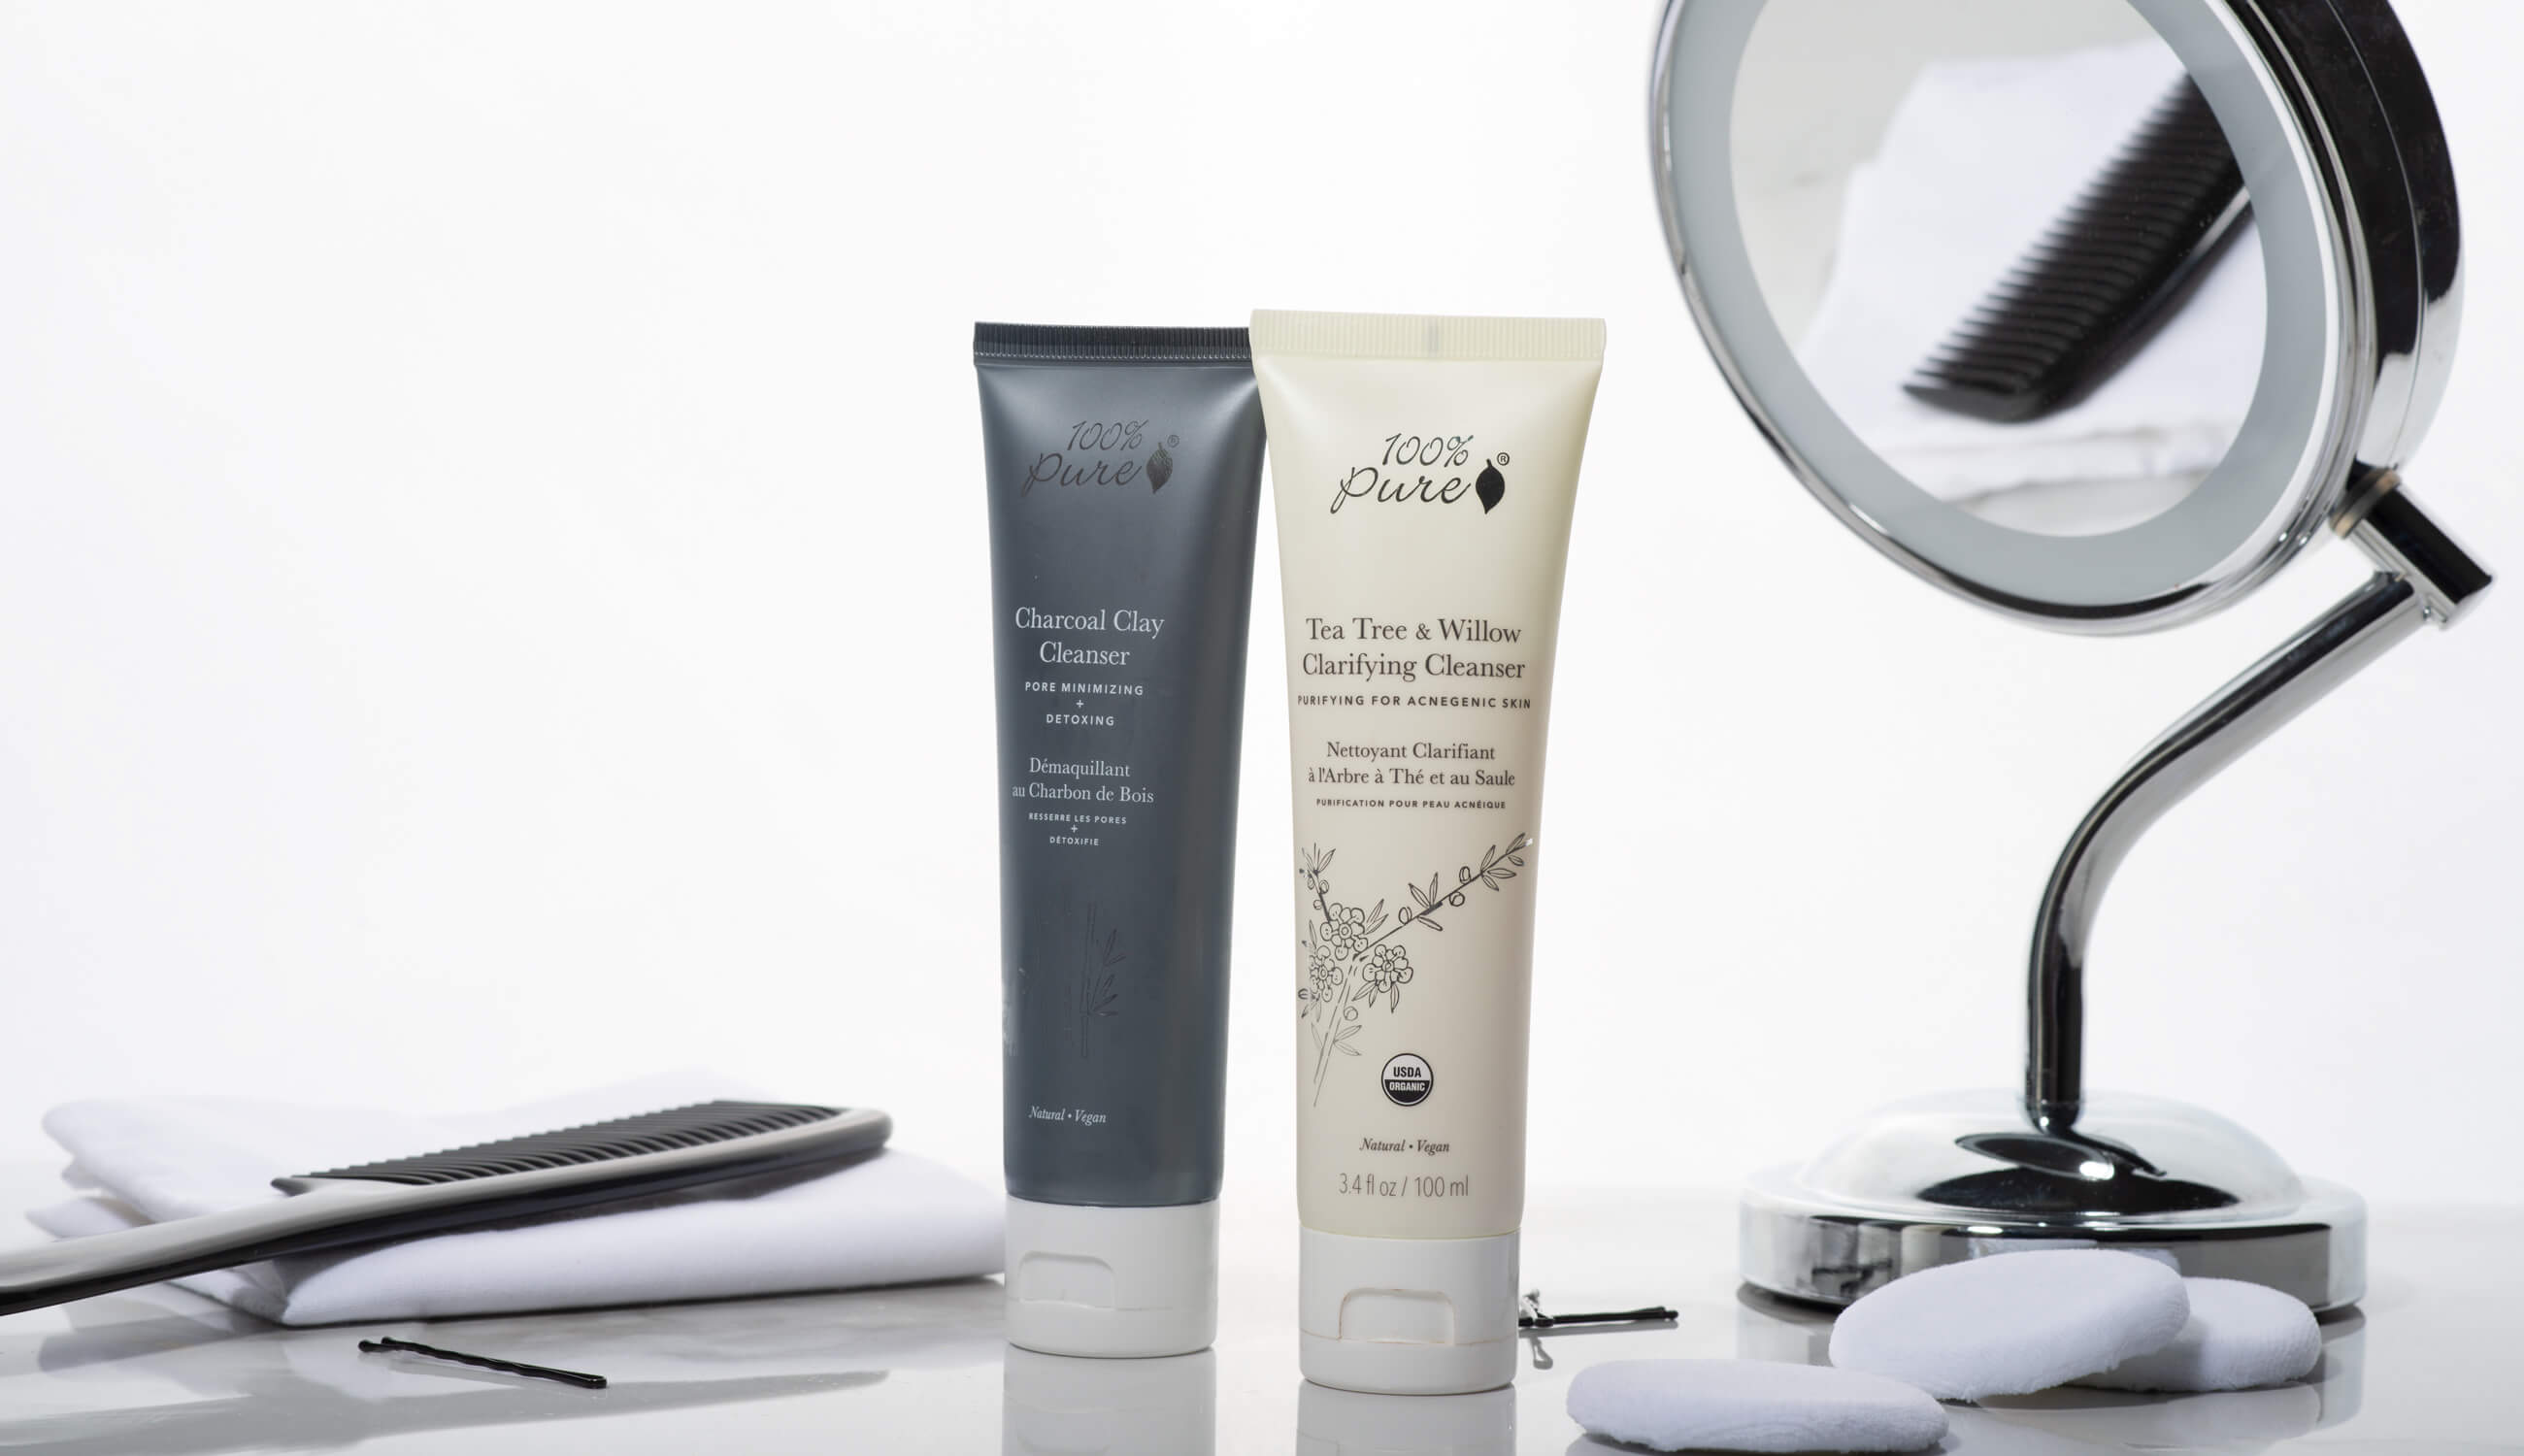 100% Pure acne cleansing products